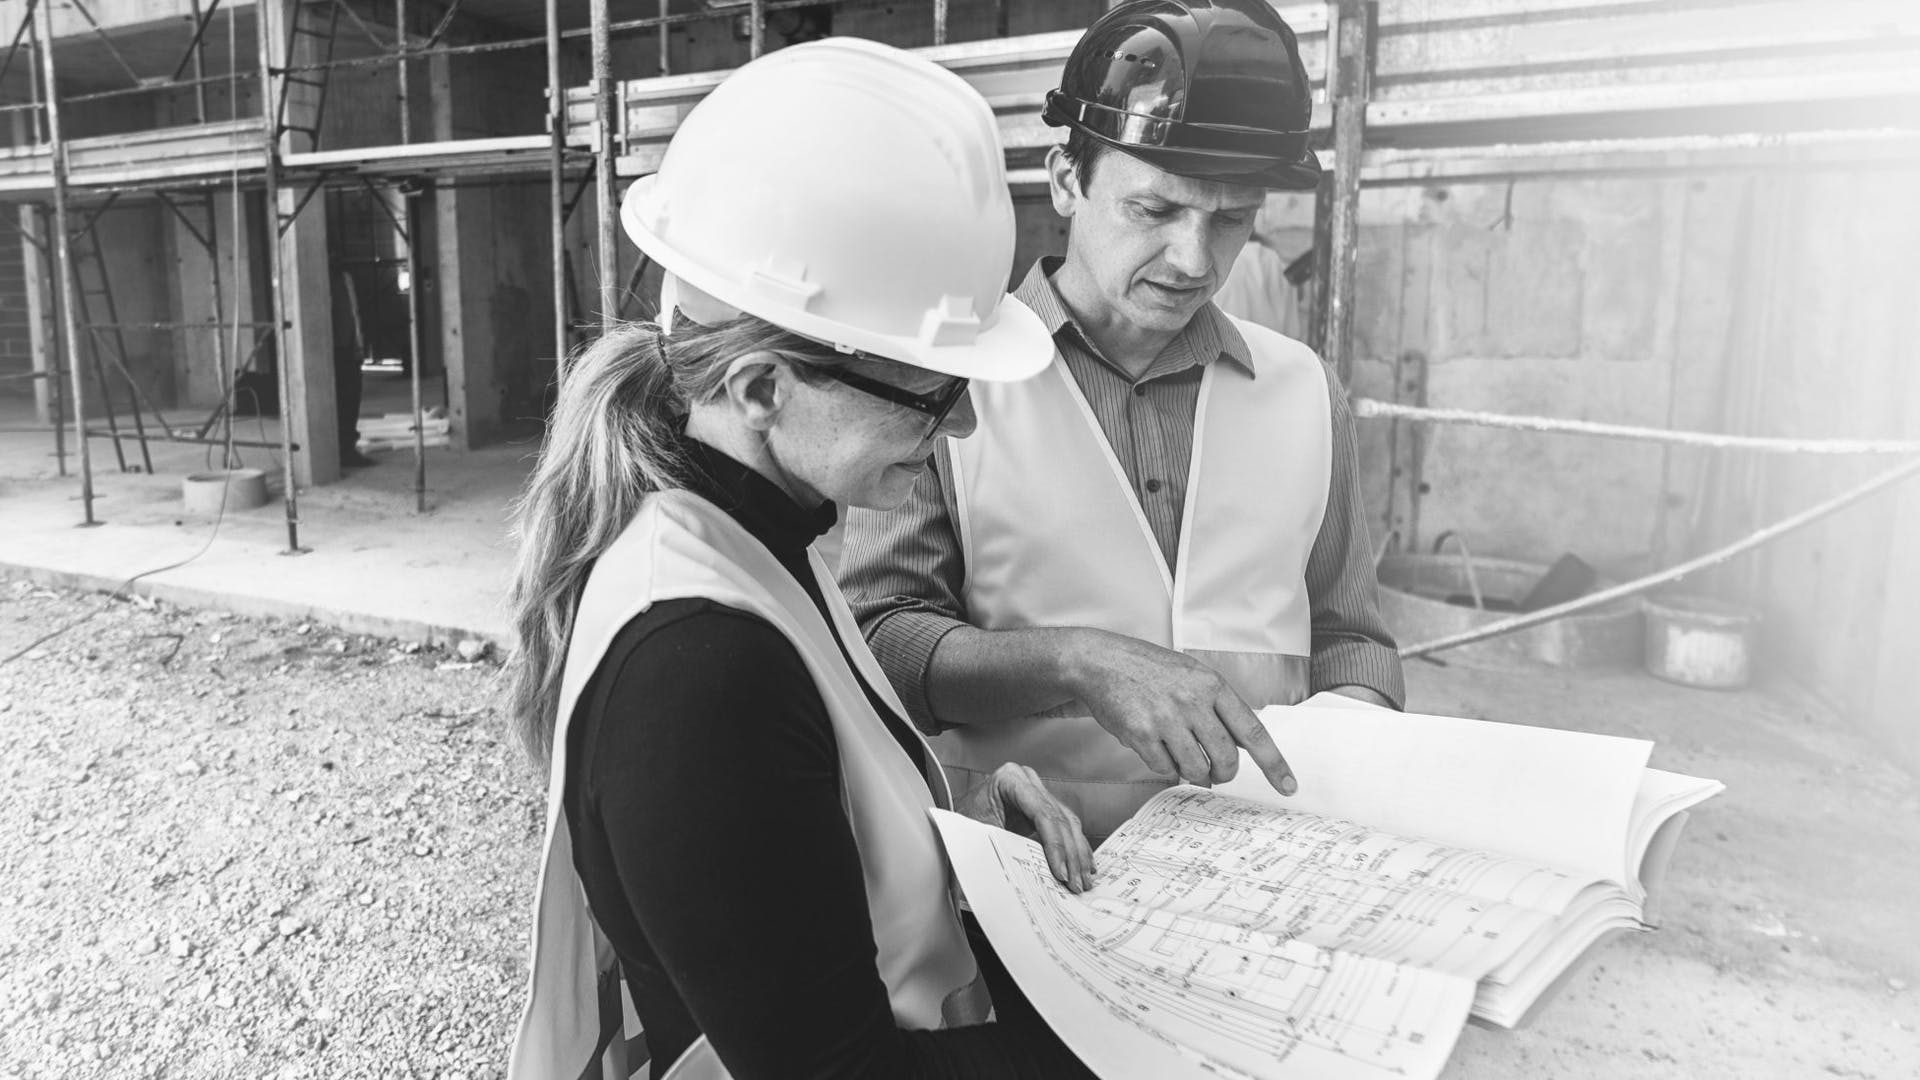 A man and a woman in a reflective clothing standing at a construction site and examining blueprints, scaffolding in background.